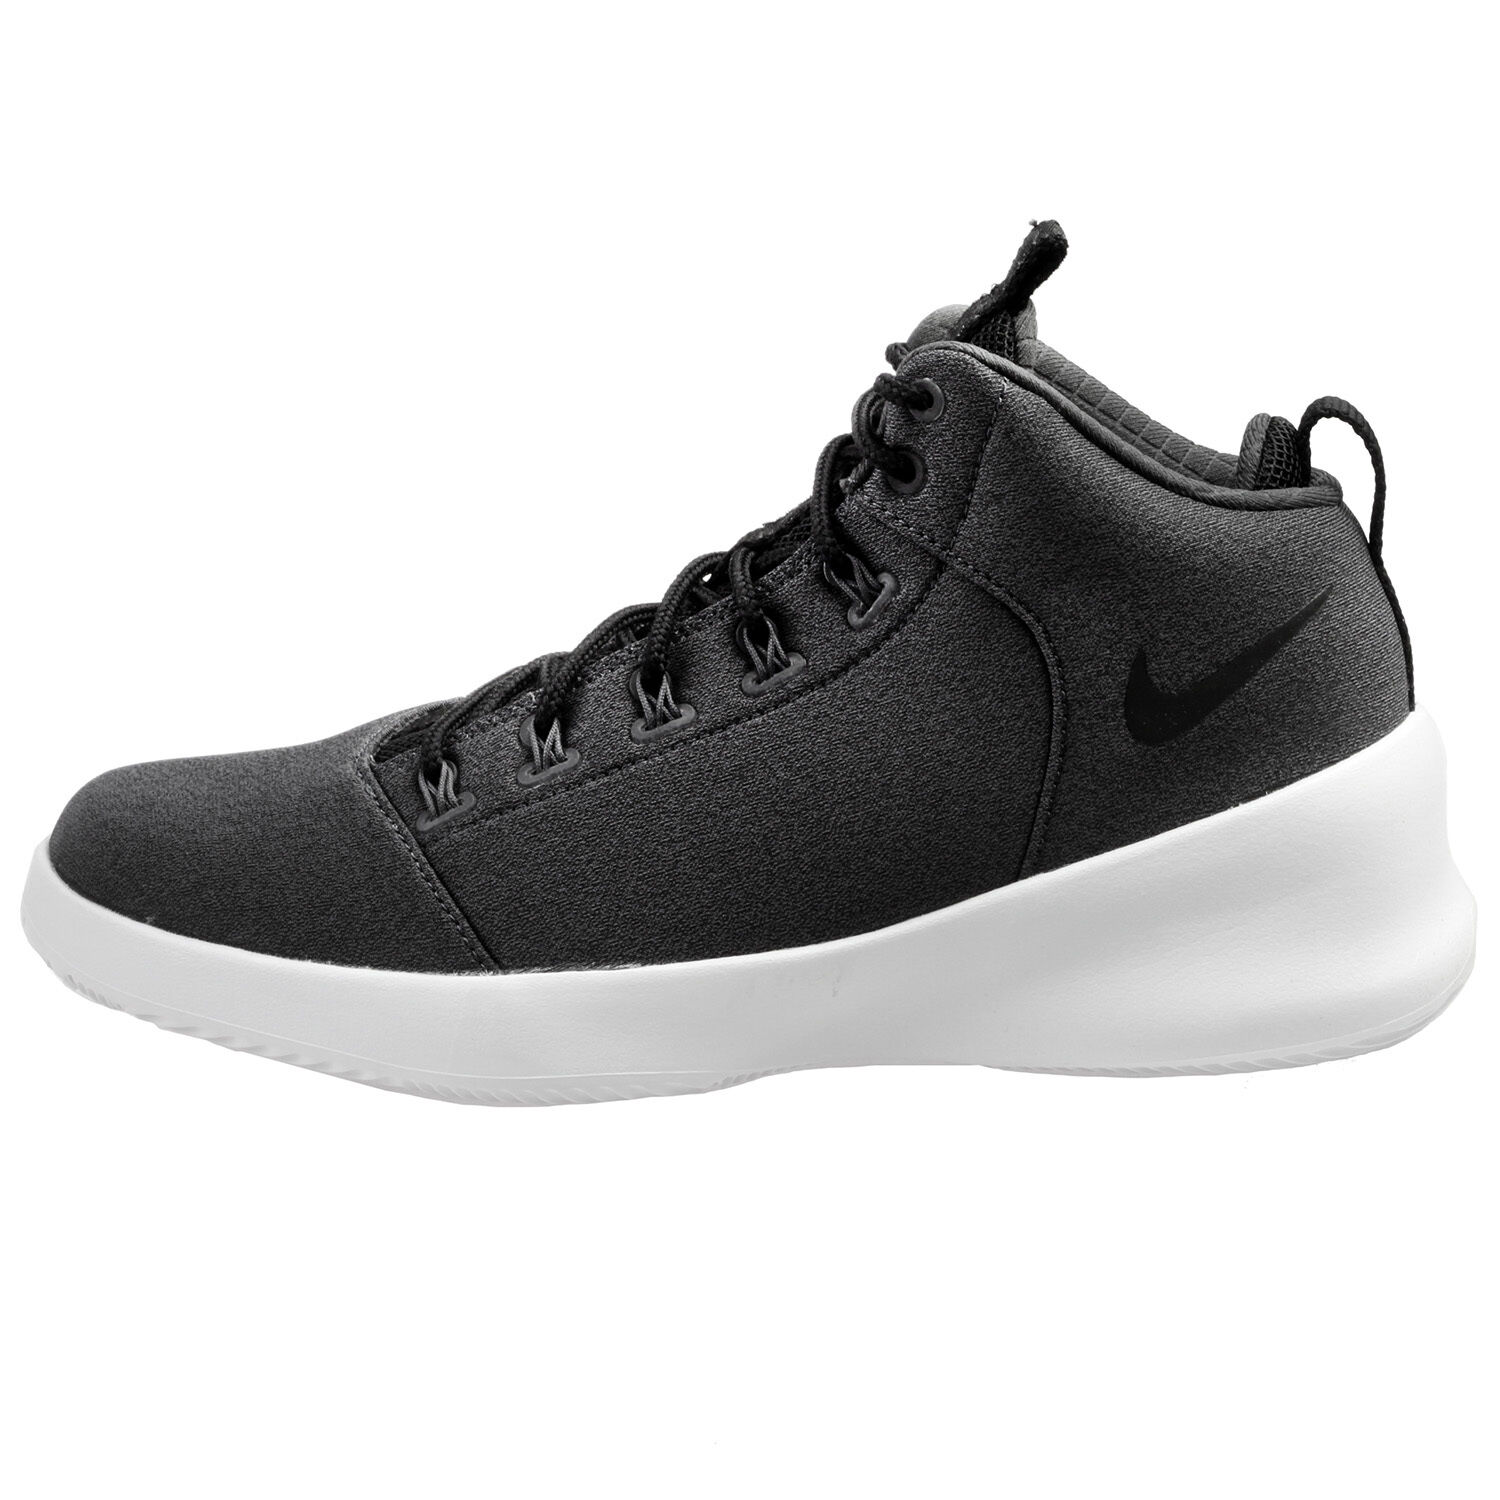 Nike Hyperfr3sh Mens 759996-003 Anthracite Off Court Shoes Sneakers Size 10